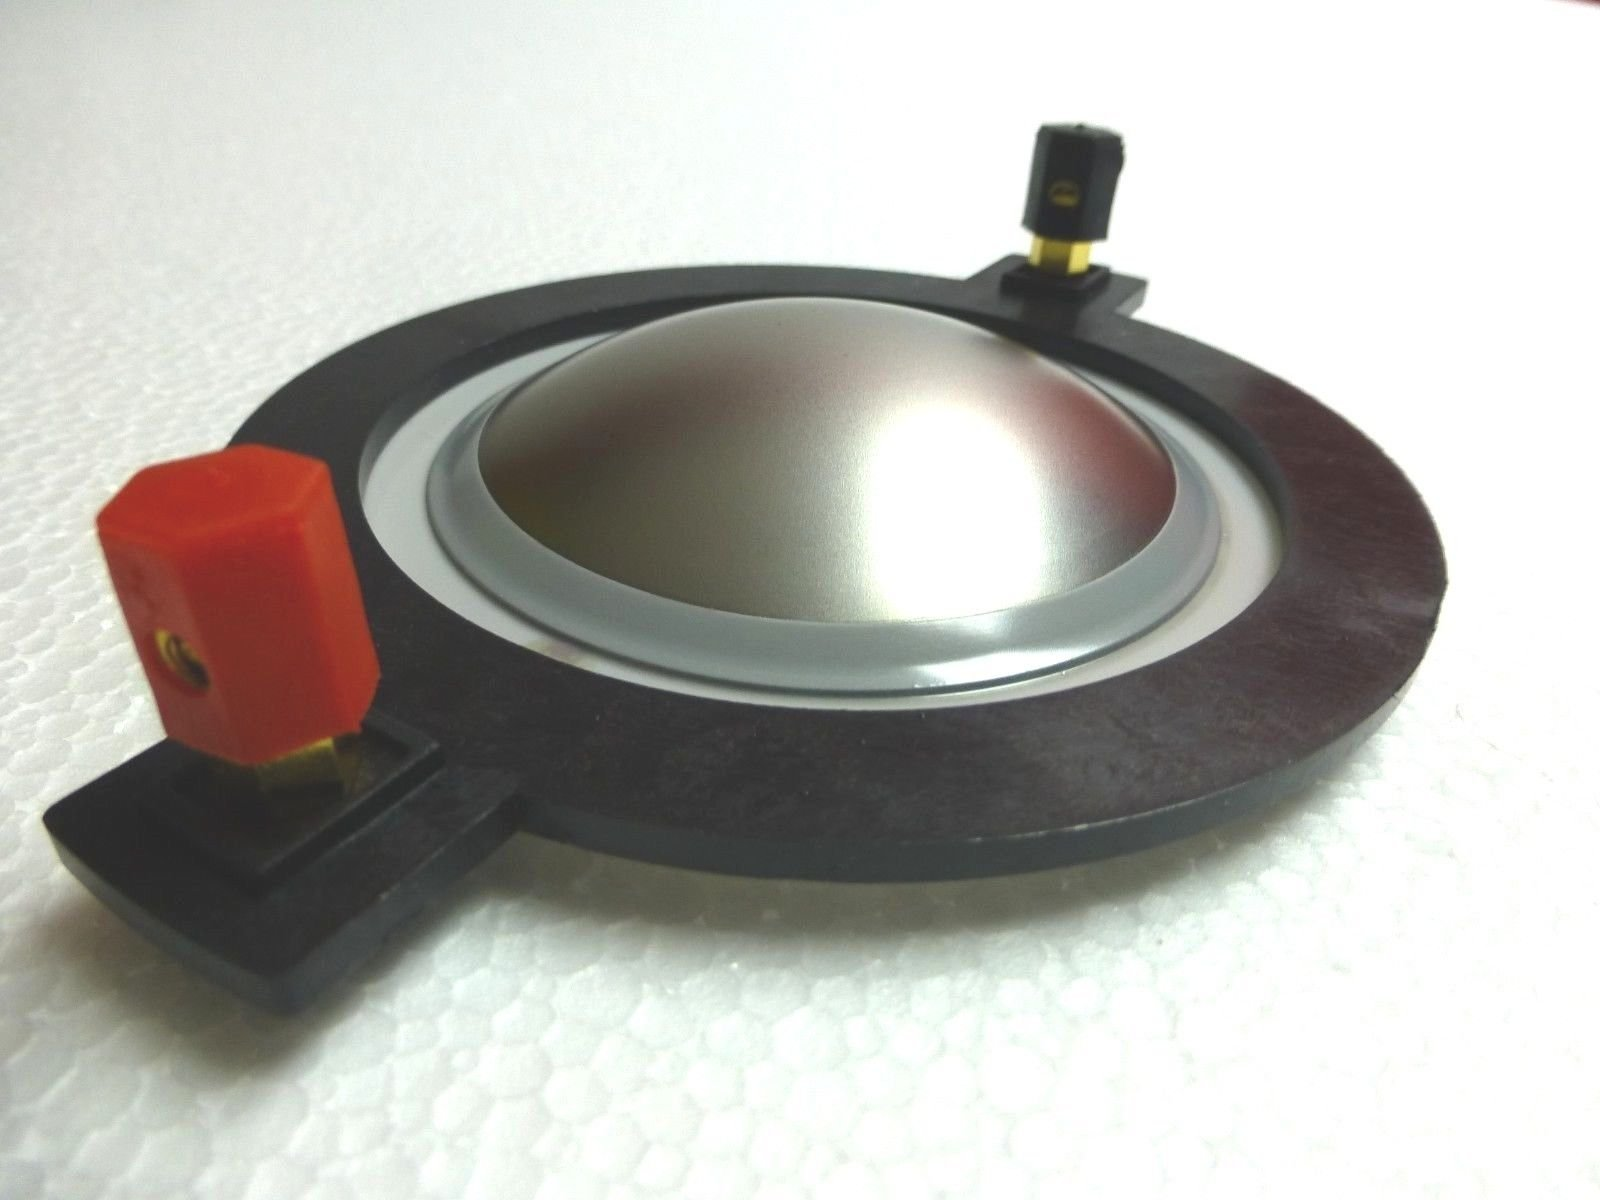 Replacement Diaphragm for EAW CD-5001, EAW CD-5003, EAW CD-5006 by ZXPC